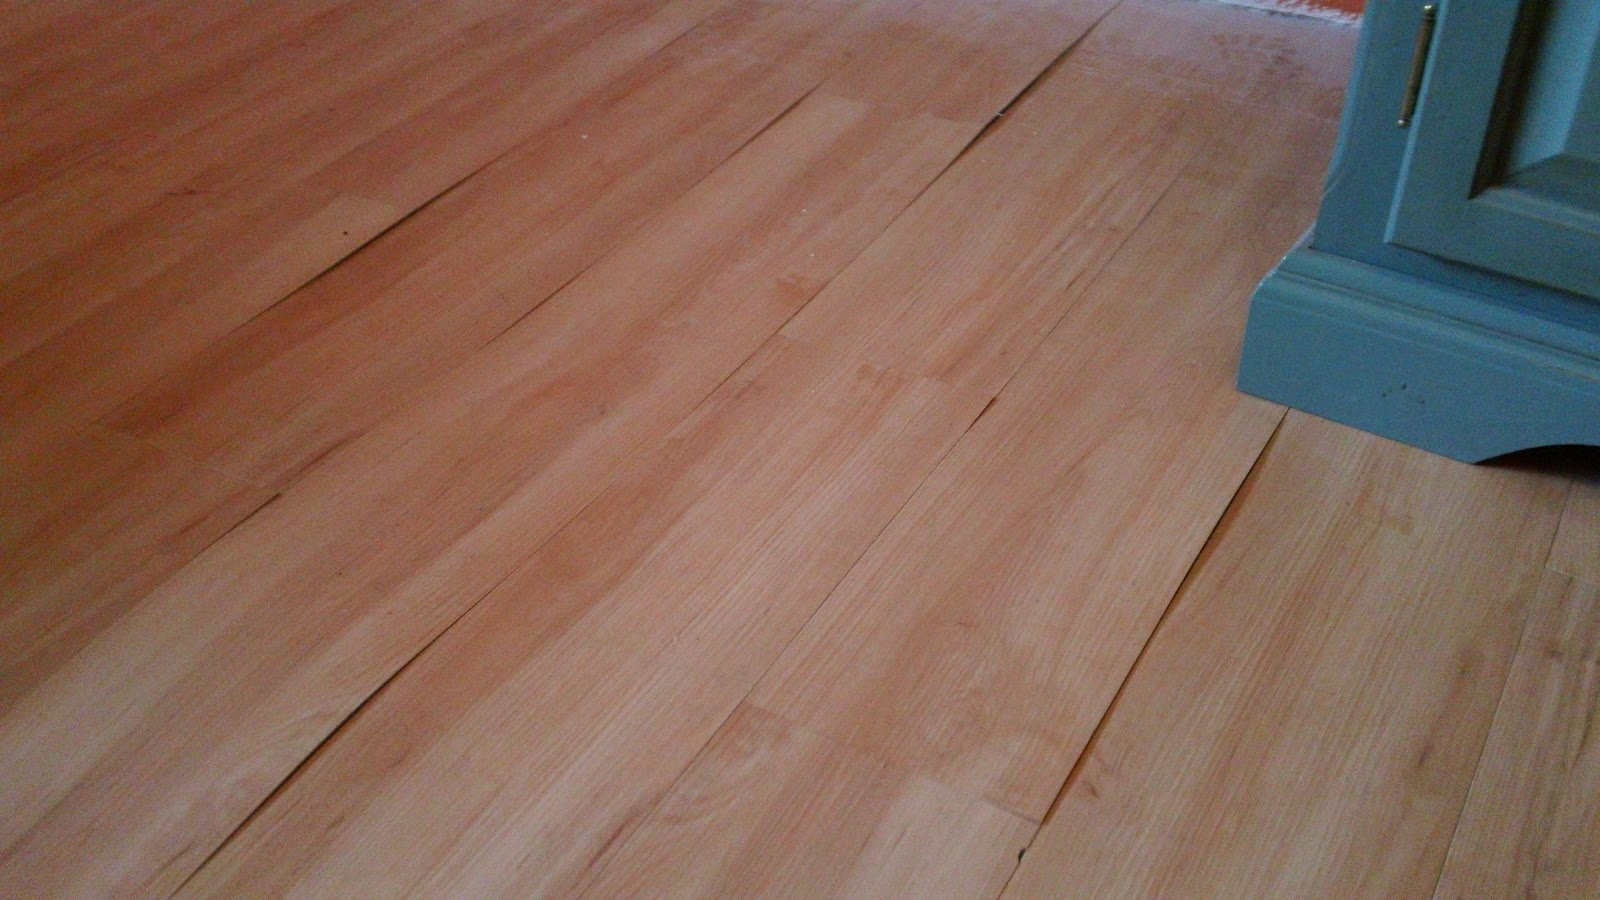 Laminate flooring water leak under laminate flooring for Floating laminate floor